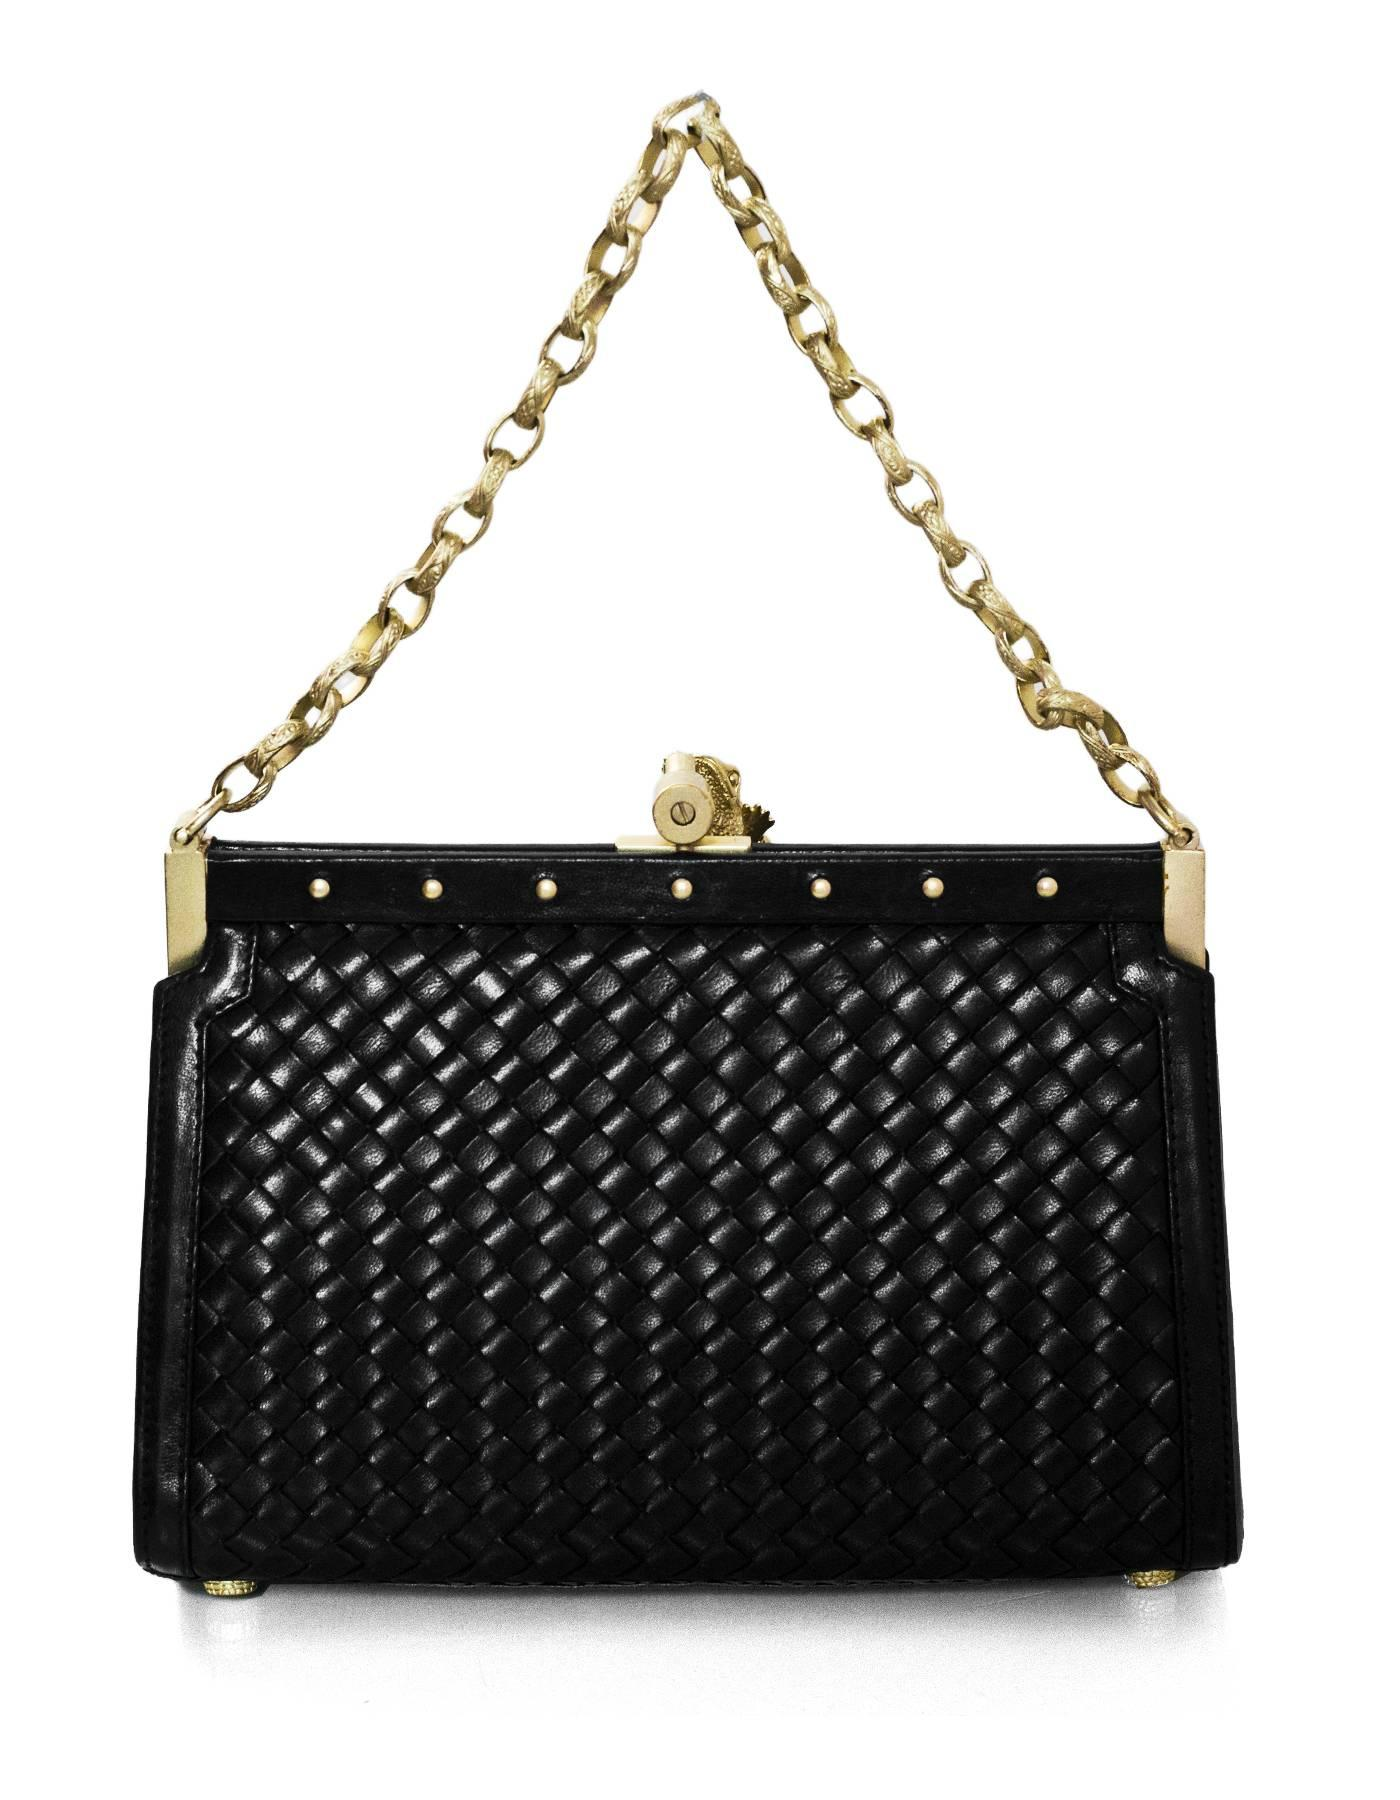 1stdibs Kieselstein-cord Black Woven Leather Frame Bag W. Frog Z8kEgBcoA